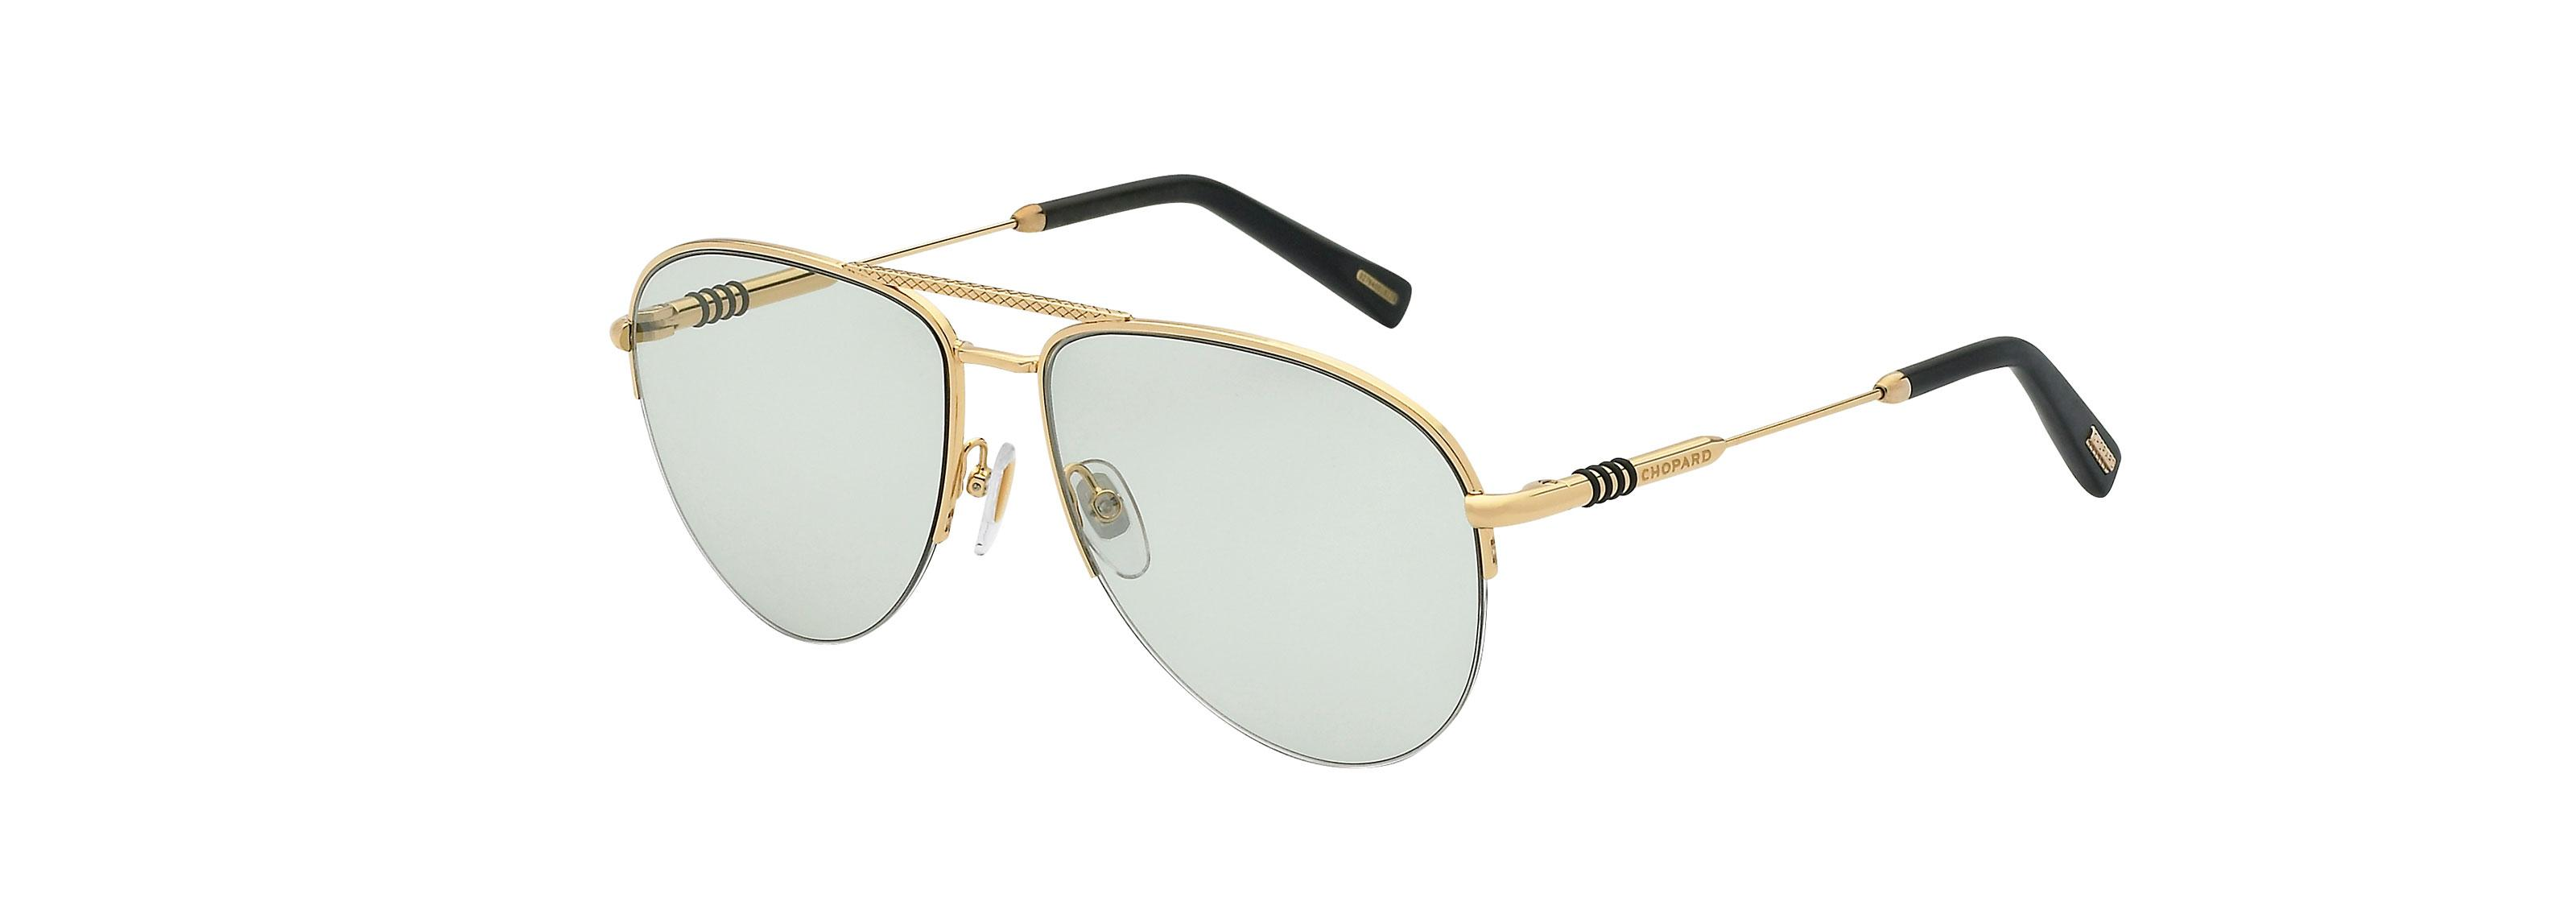 CHOPARD 1000 MIGLIA SUNGLASSES SPECIAL EDITION